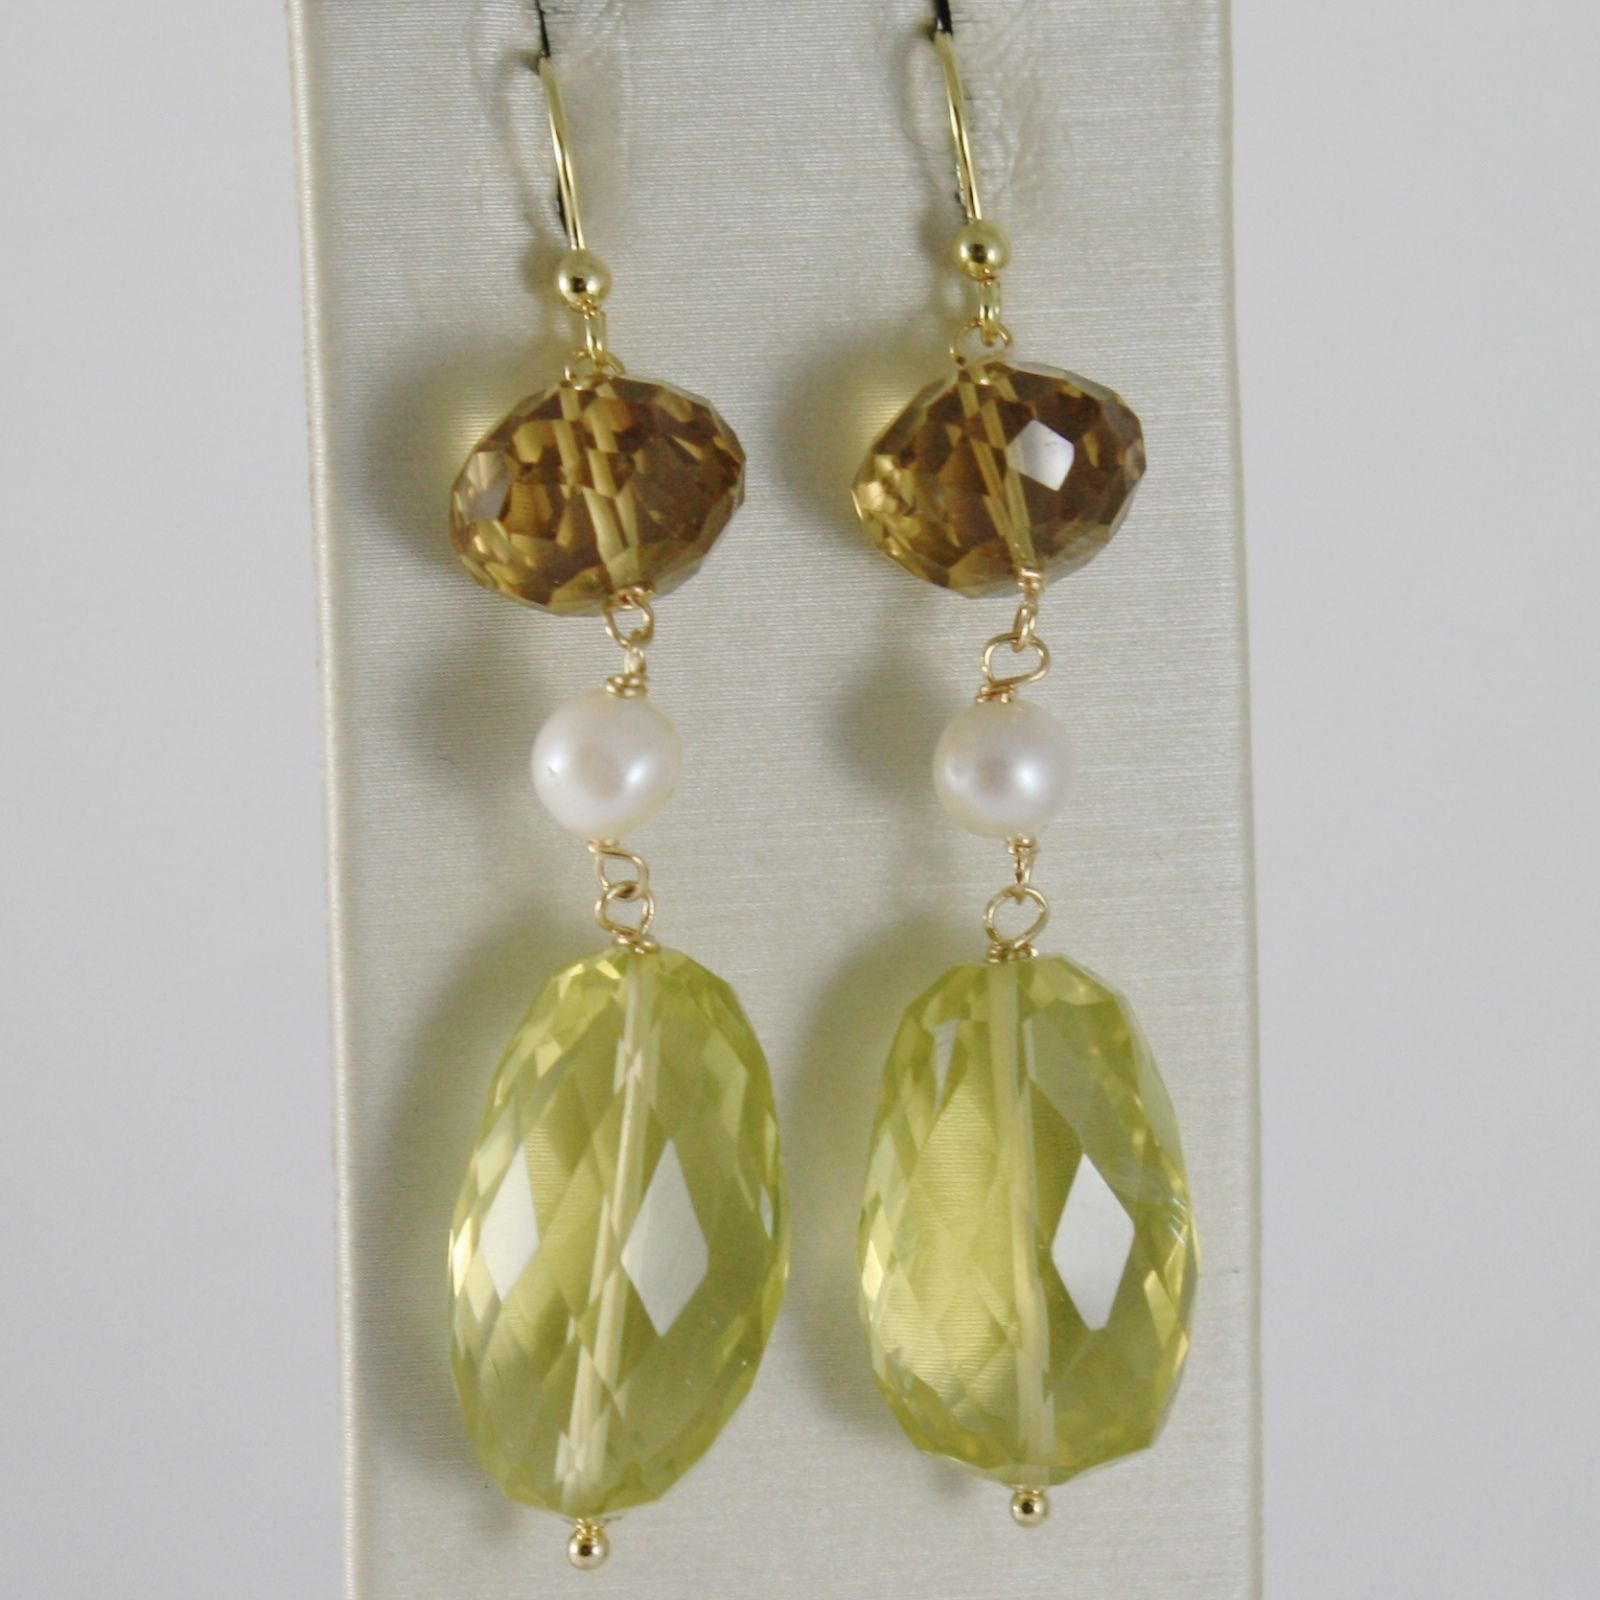 SOLID 18K YELLOW GOLD PENDANT EARRINGS CUSHION LEMON AND SMOKY QUARTZ, PEARLS